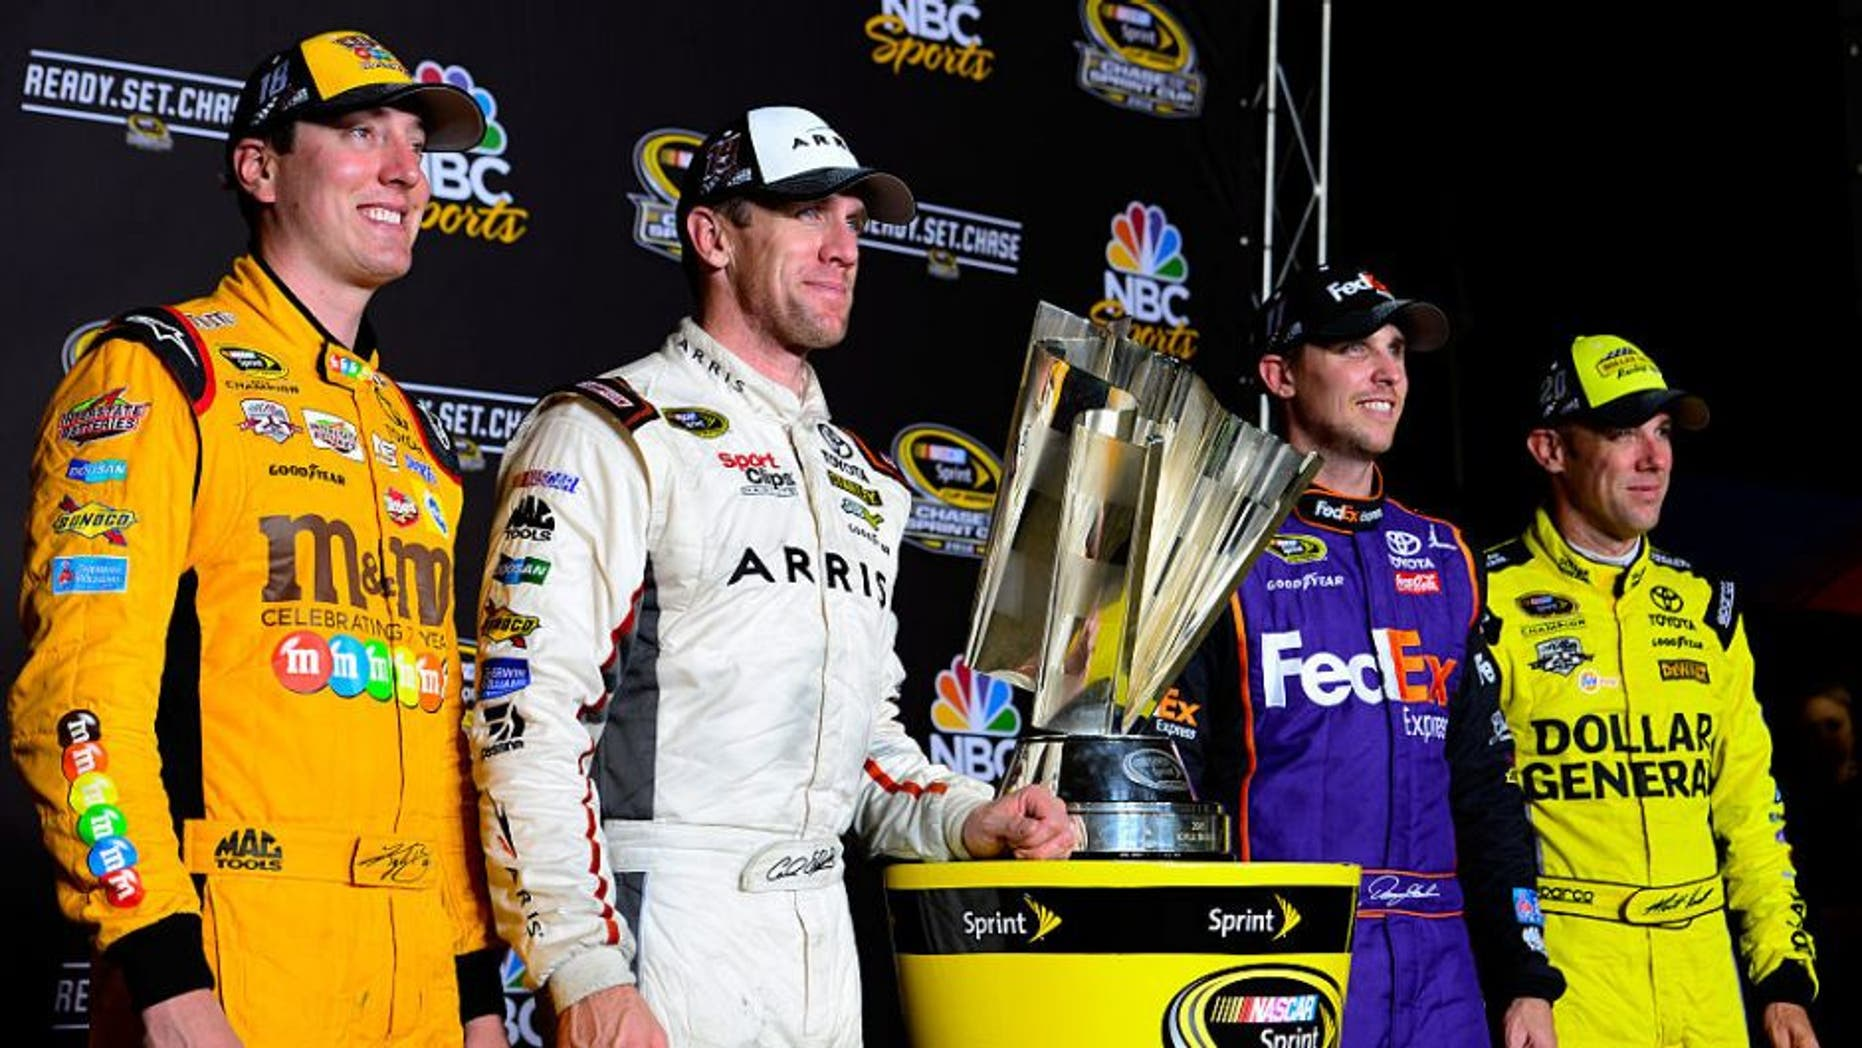 RICHMOND, VA - SEPTEMBER 10: Kyle Busch, driver of the #18 M&M's 75th Anniversary Toyota, Carl Edwards, driver of the #19 ARRIS Surfboard Toyota, Denny Hamlin, driver of the #11 FedEx Ground Toyota, and Matt Kenseth, driver of the #20 Dollar General Toyota, pose with the NASCAR Sprint Cup trophy after the NASCAR Sprint Cup Series Federated Auto Parts 400 at Richmond International Raceway on September 10, 2016 in Richmond, Virginia. (Photo by Robert Laberge/Getty Images)